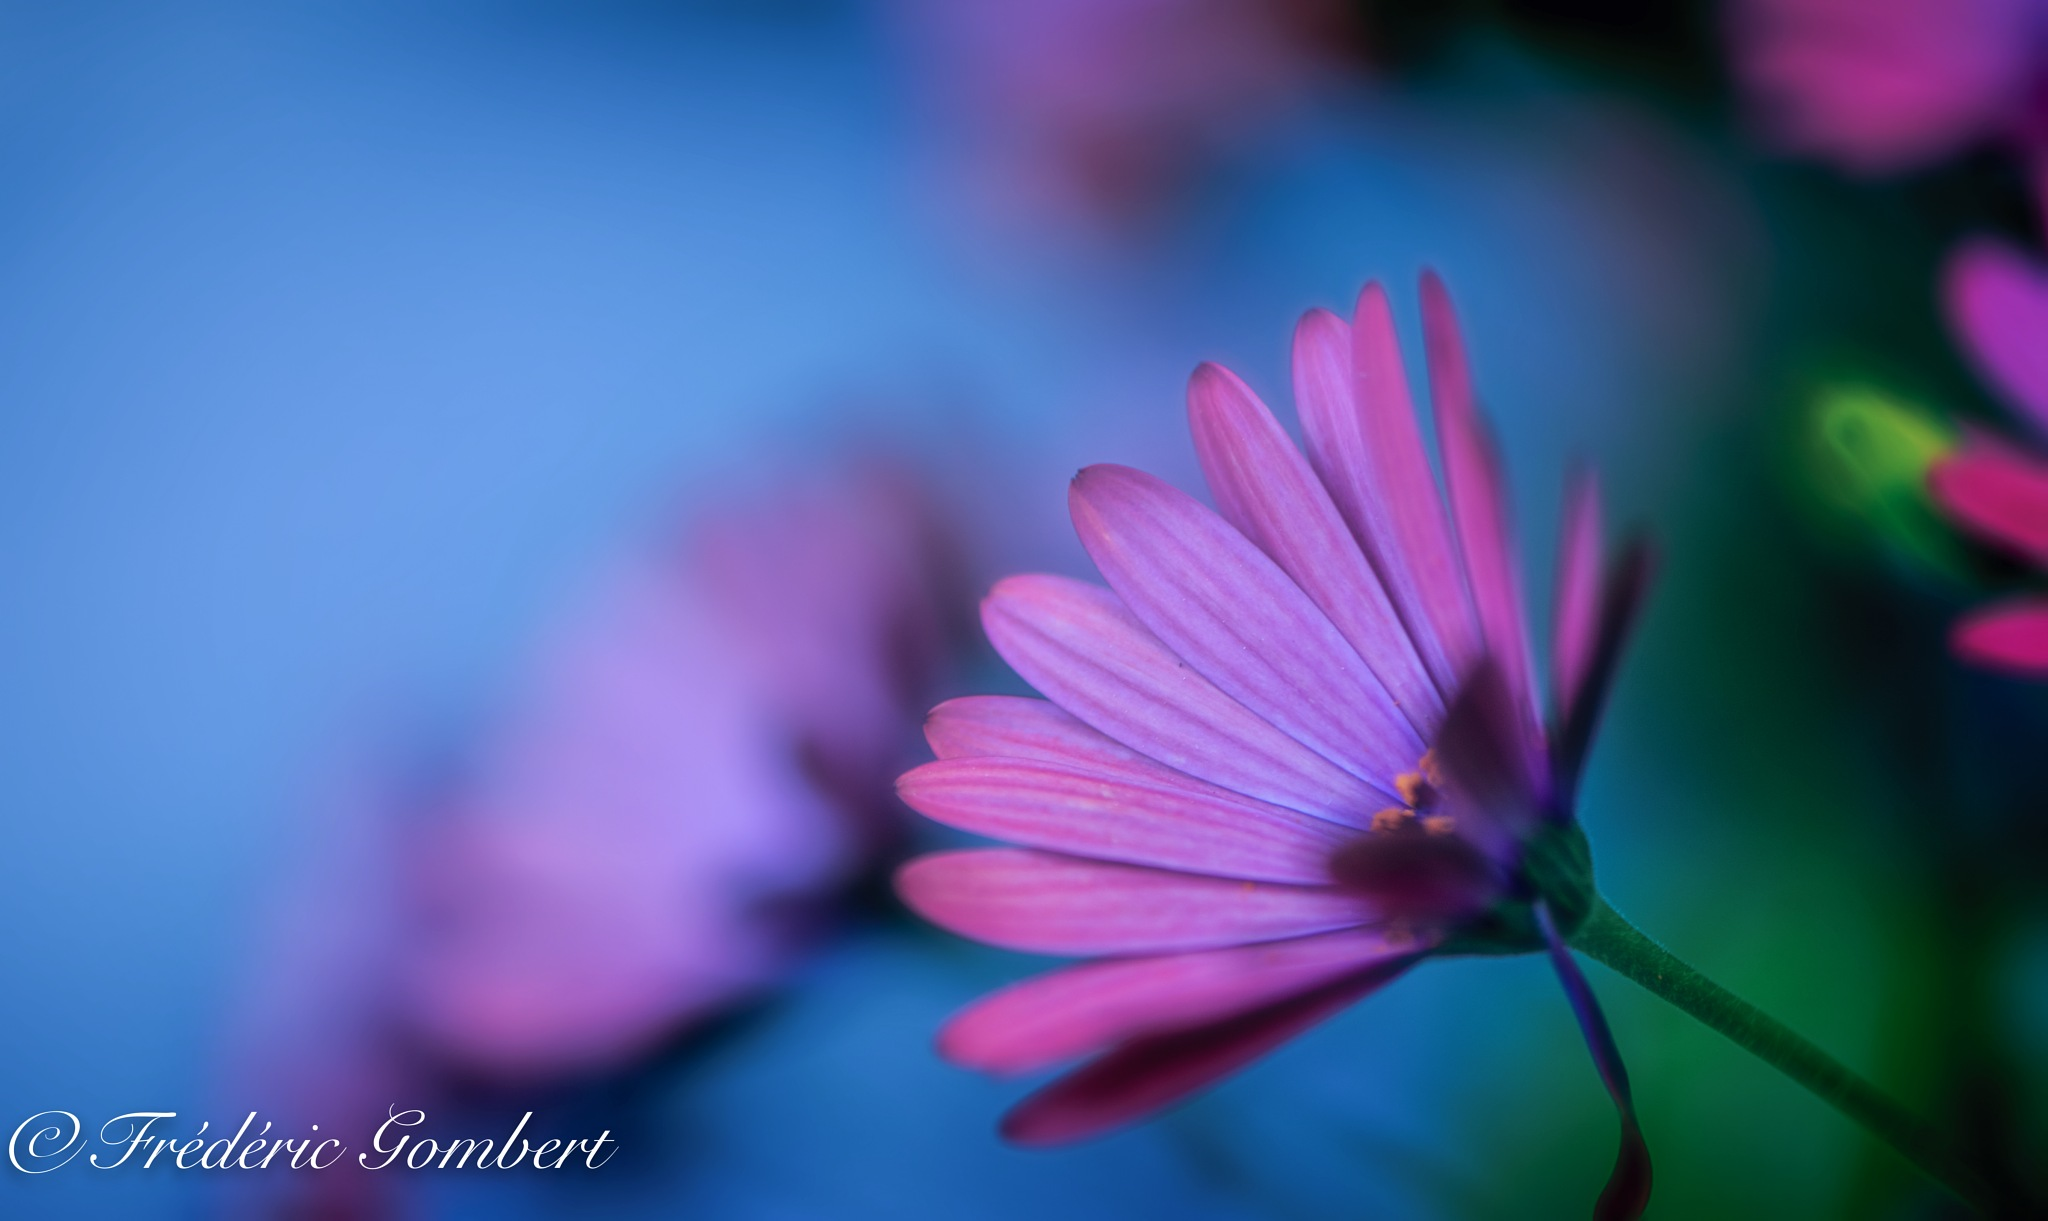 Blue Sky by Frederic Gombert